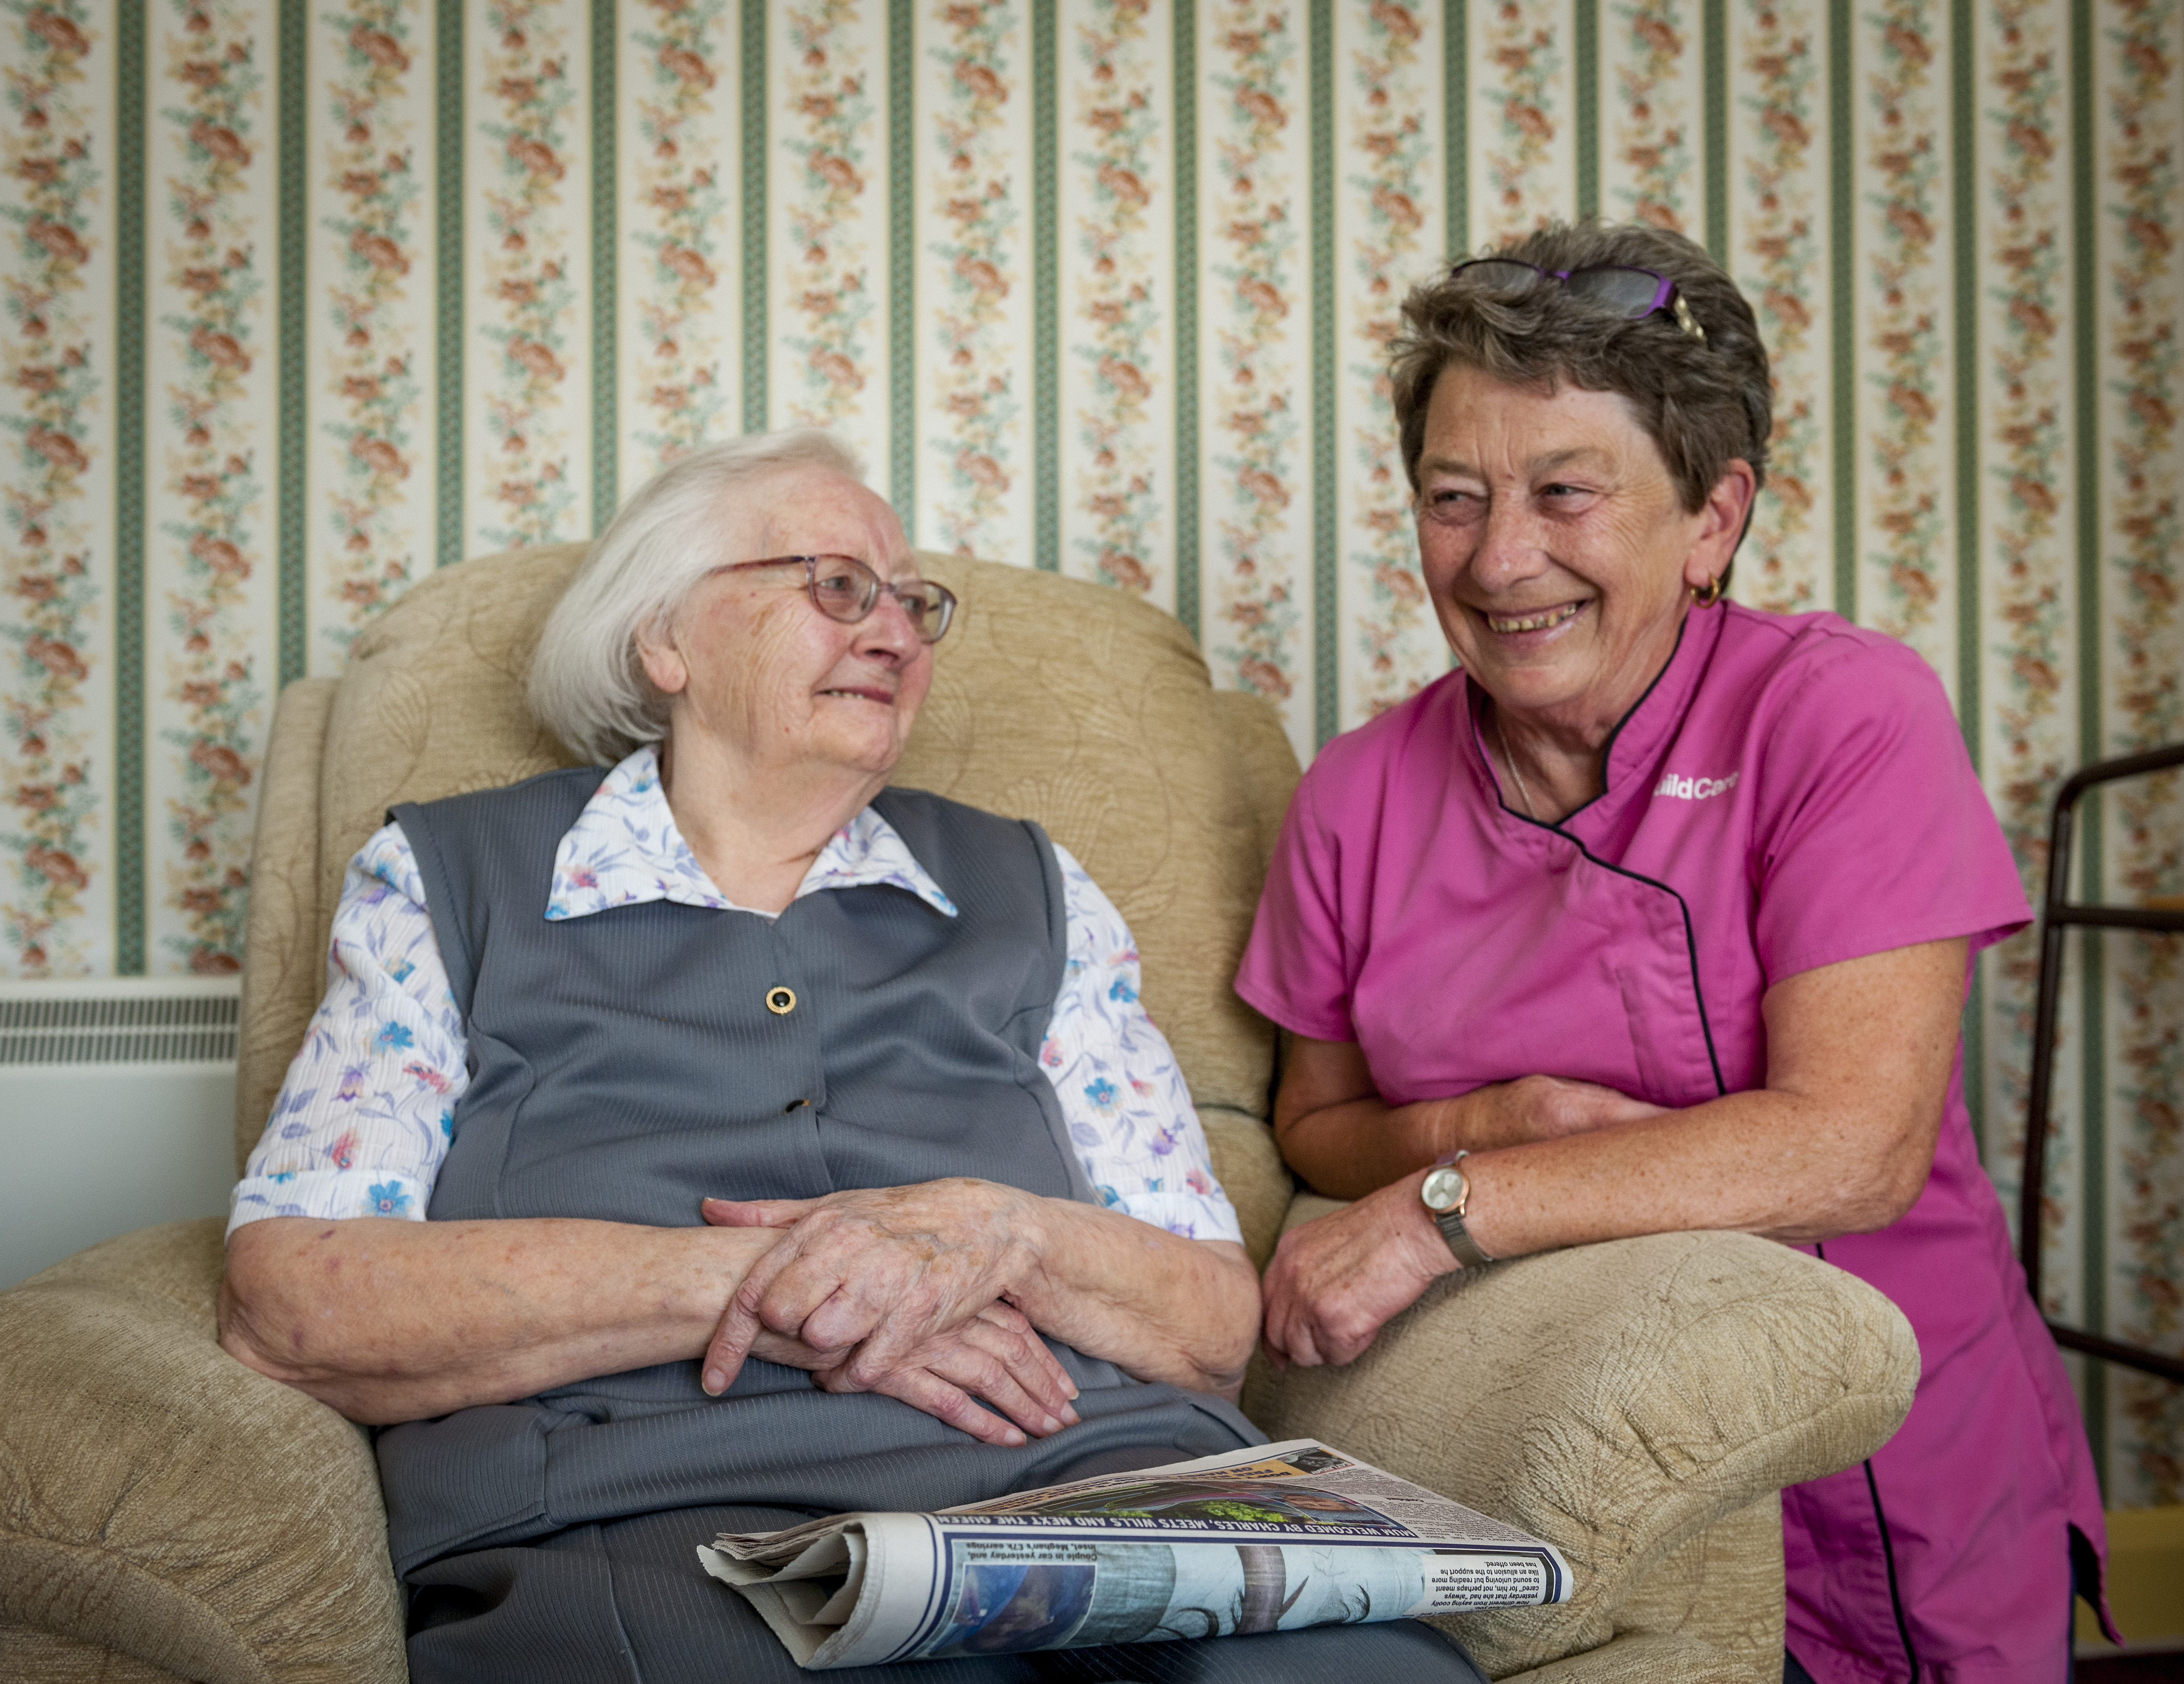 Guild Care home care assistant with one of her clients smiling and reading the newspaper